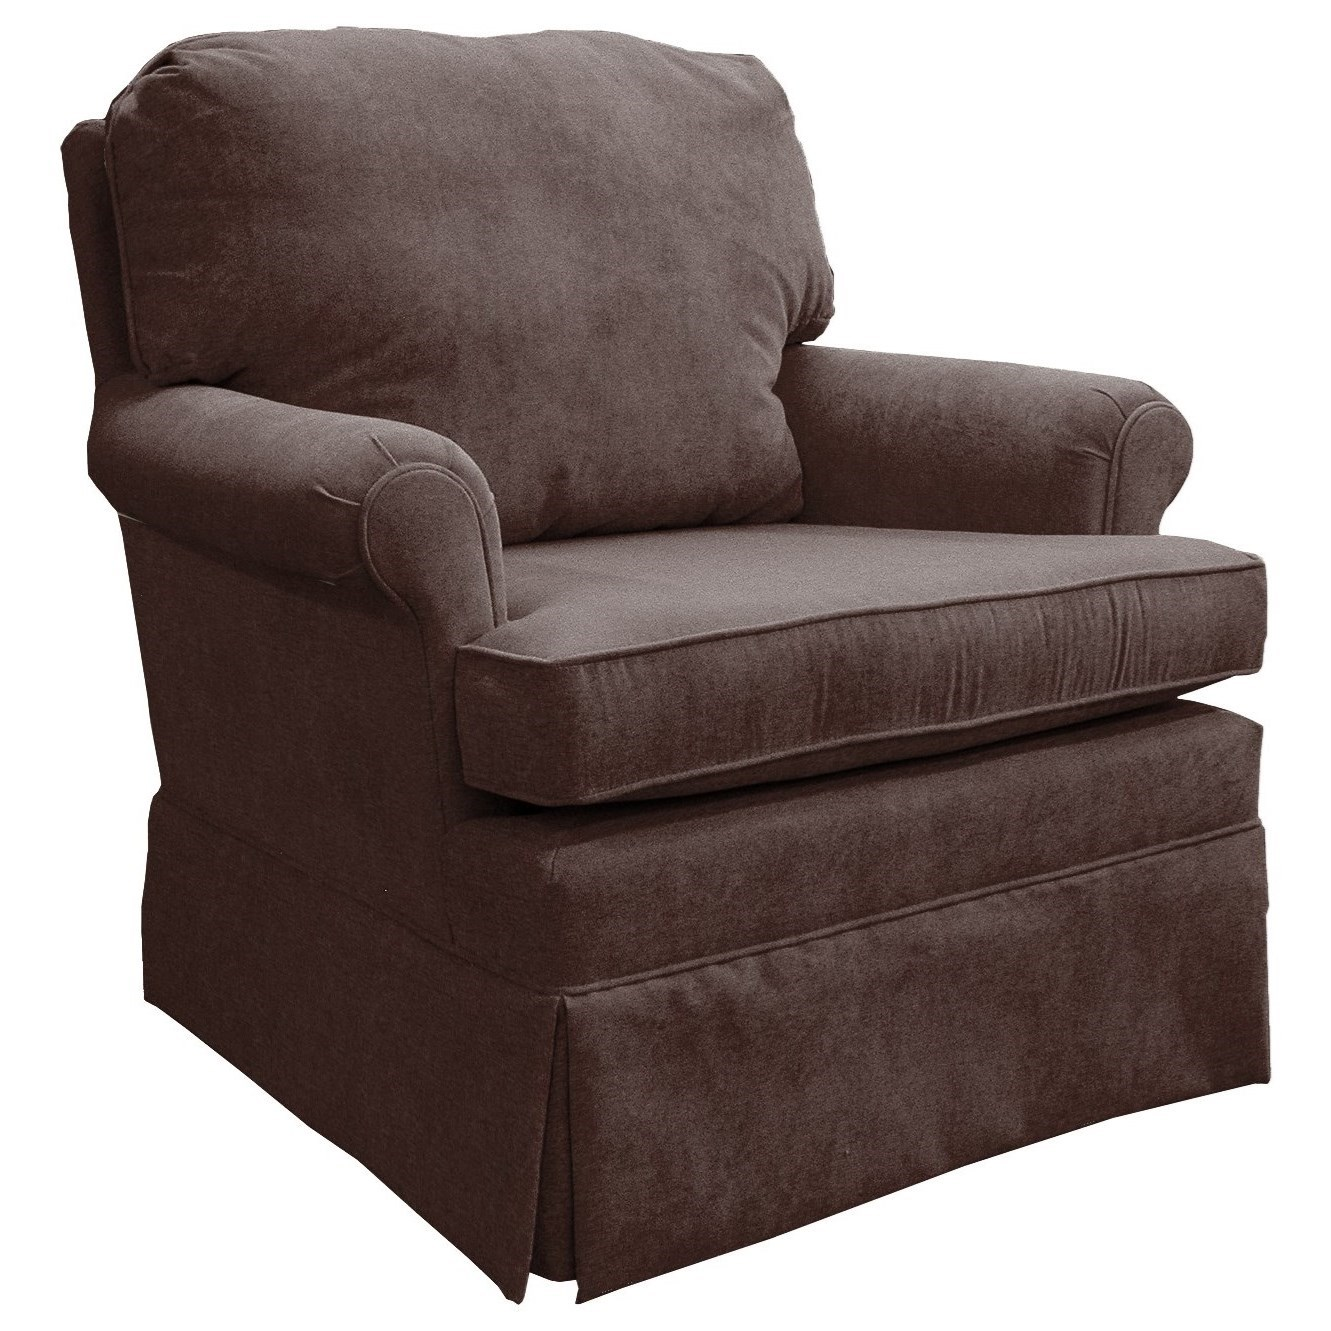 Best Home Furnishings Patoka Club Chair - Item Number: 2610-23168C